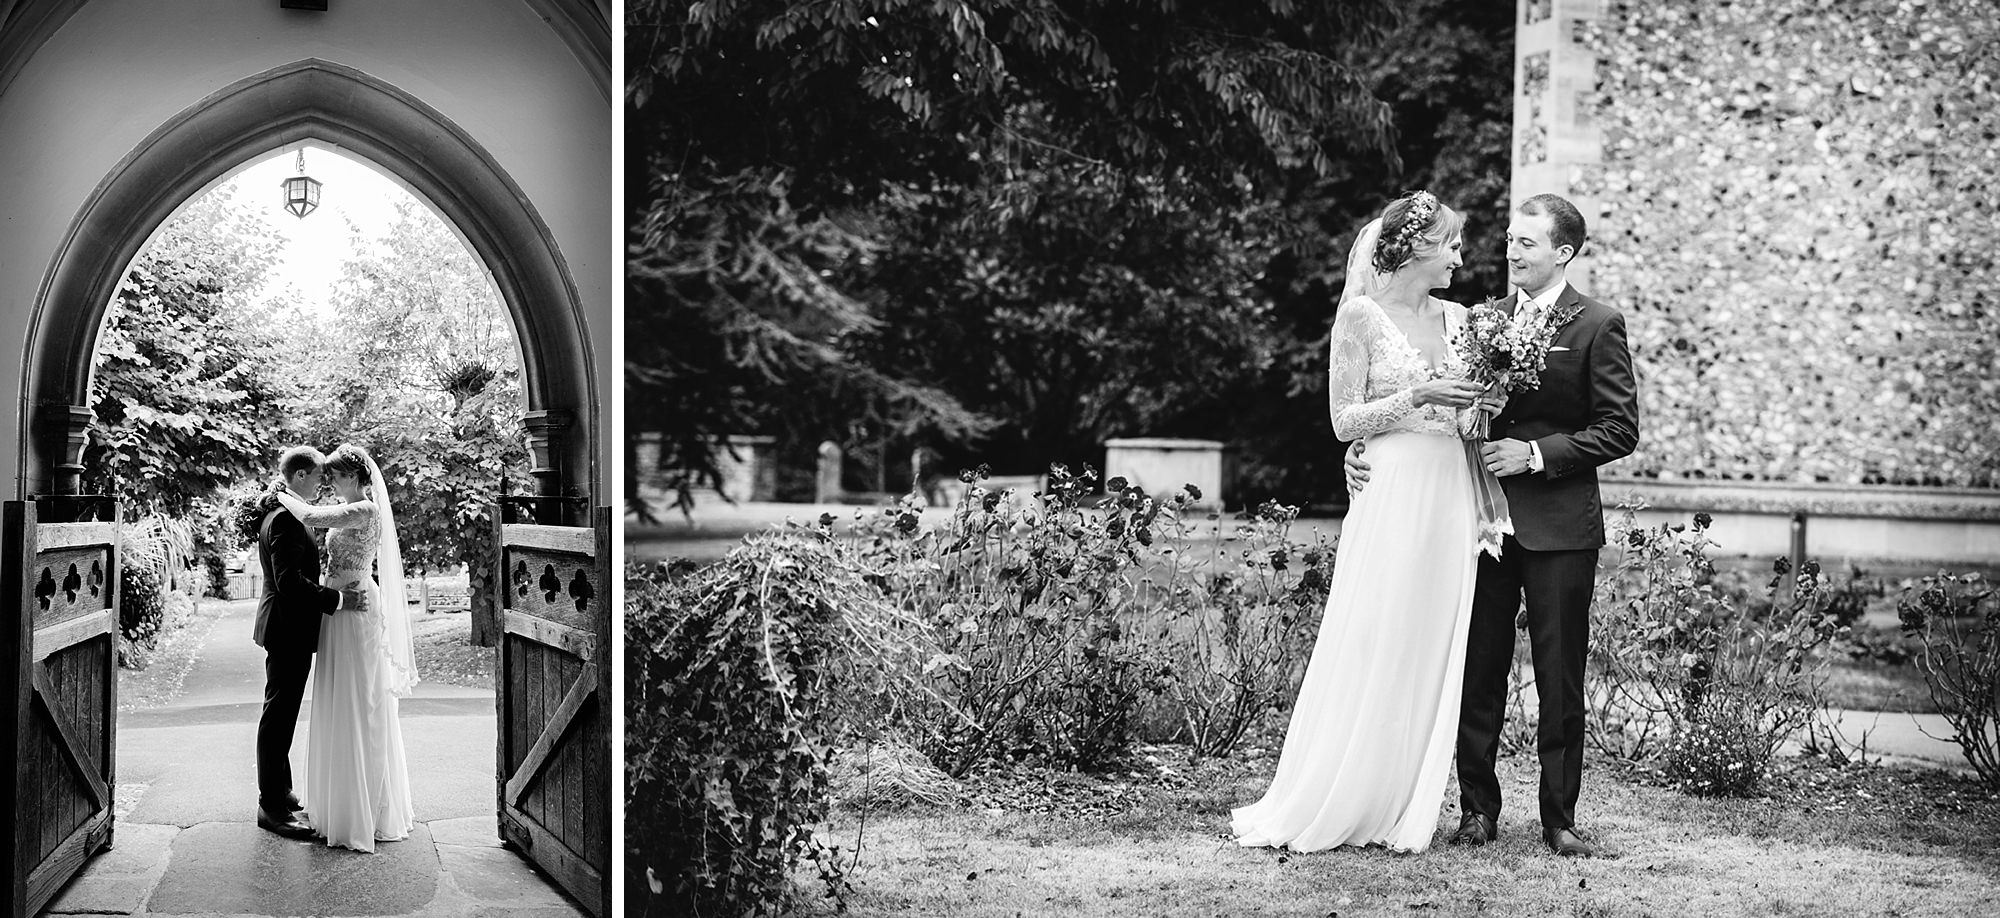 Marks Hall Estate wedding photography bride and groom in church grounds